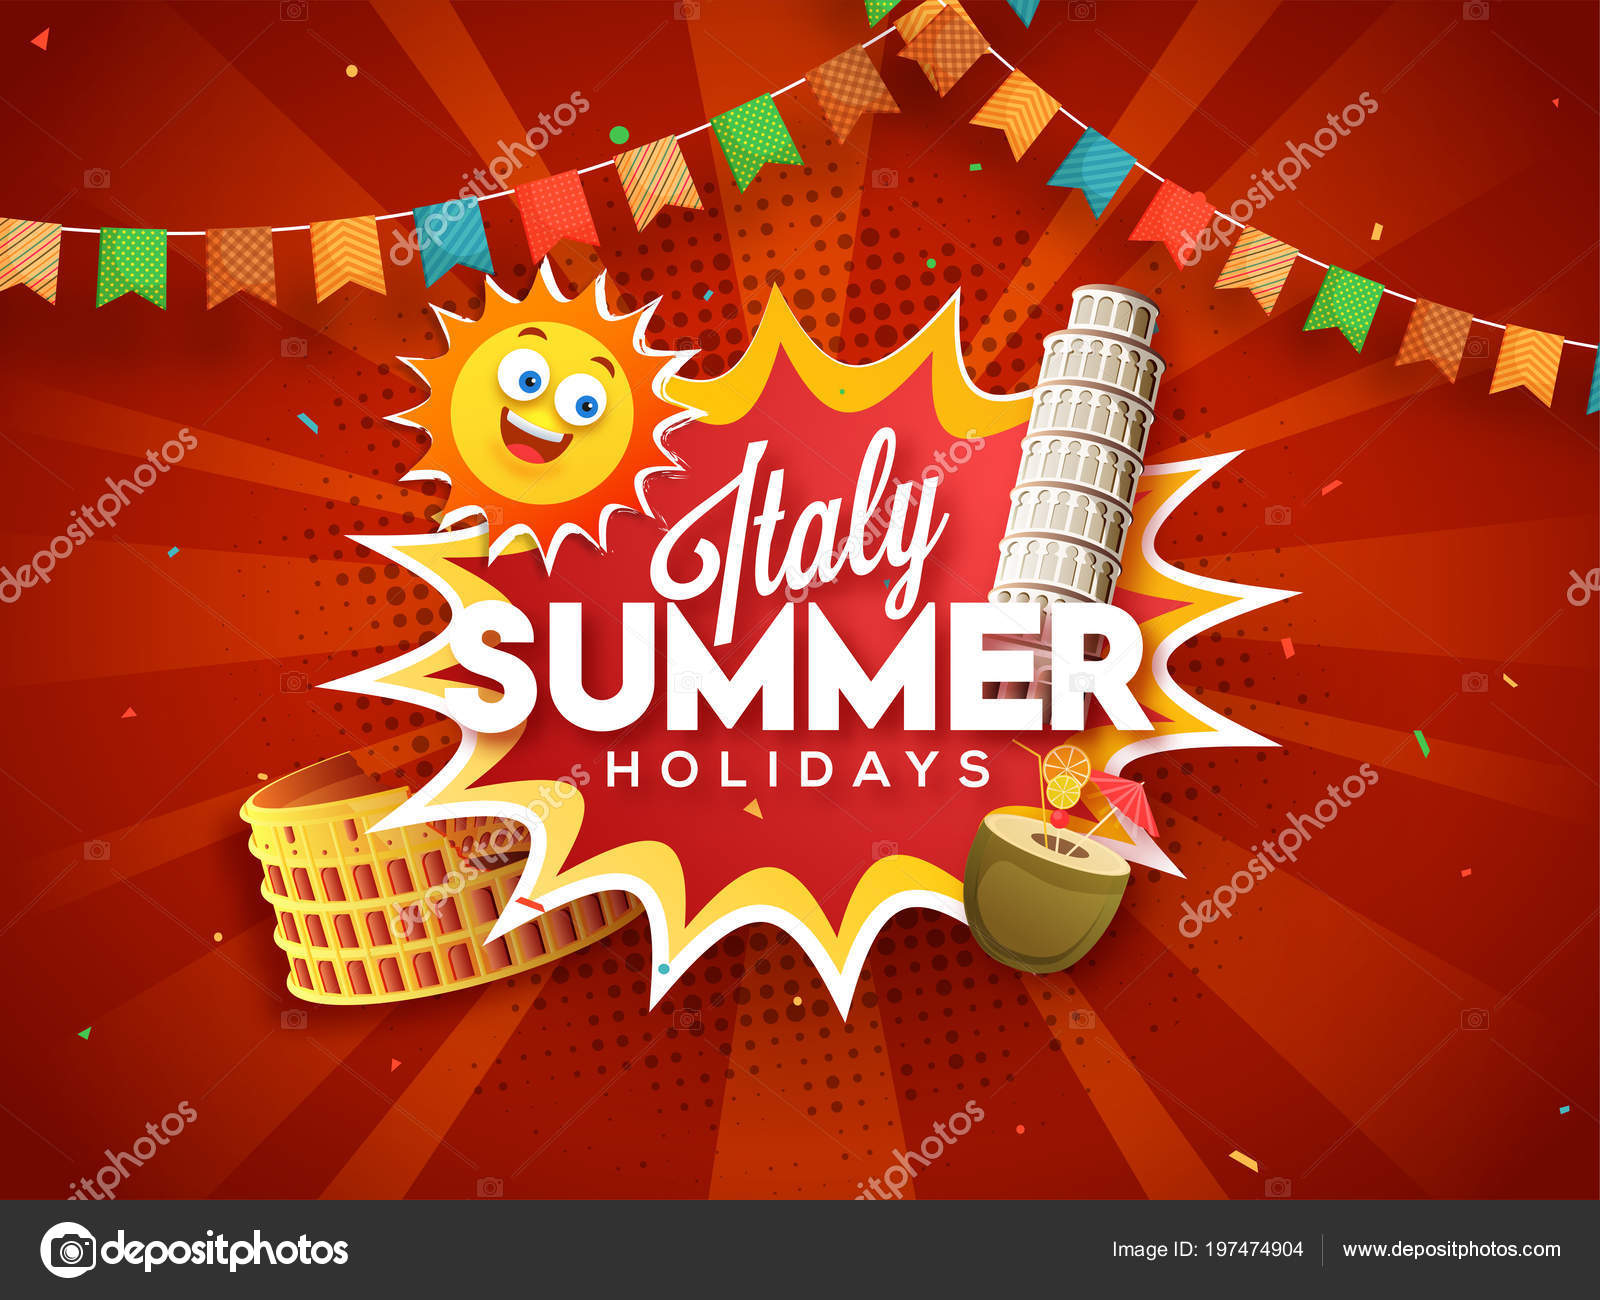 Italy Summer Holidays Concept Colosseum Pisa Tower Happy Sun